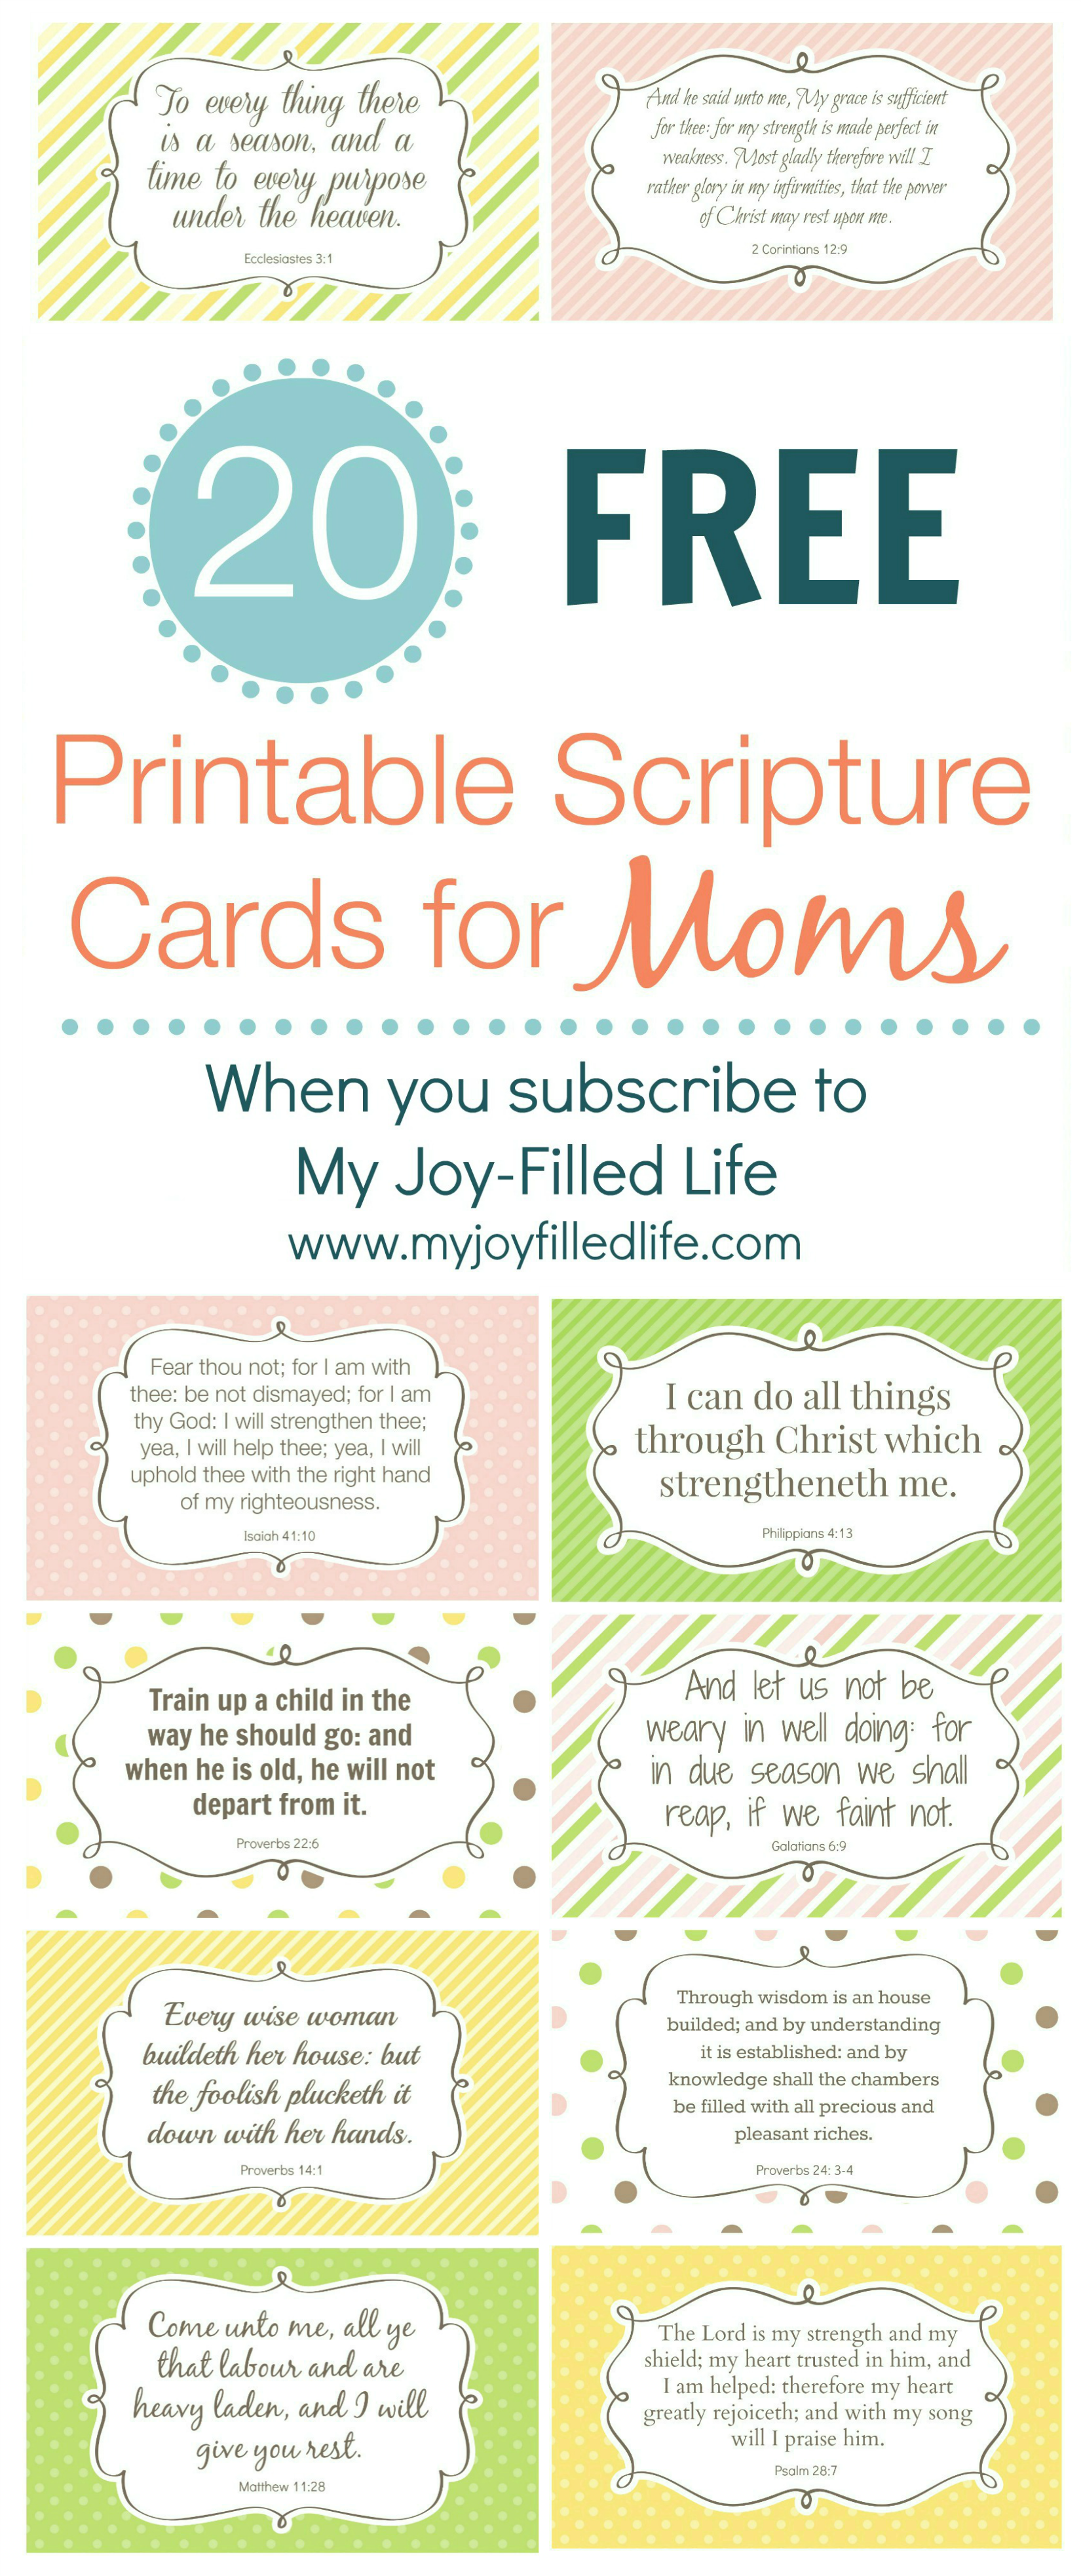 encouragement for moms free printable scripture cards. Black Bedroom Furniture Sets. Home Design Ideas